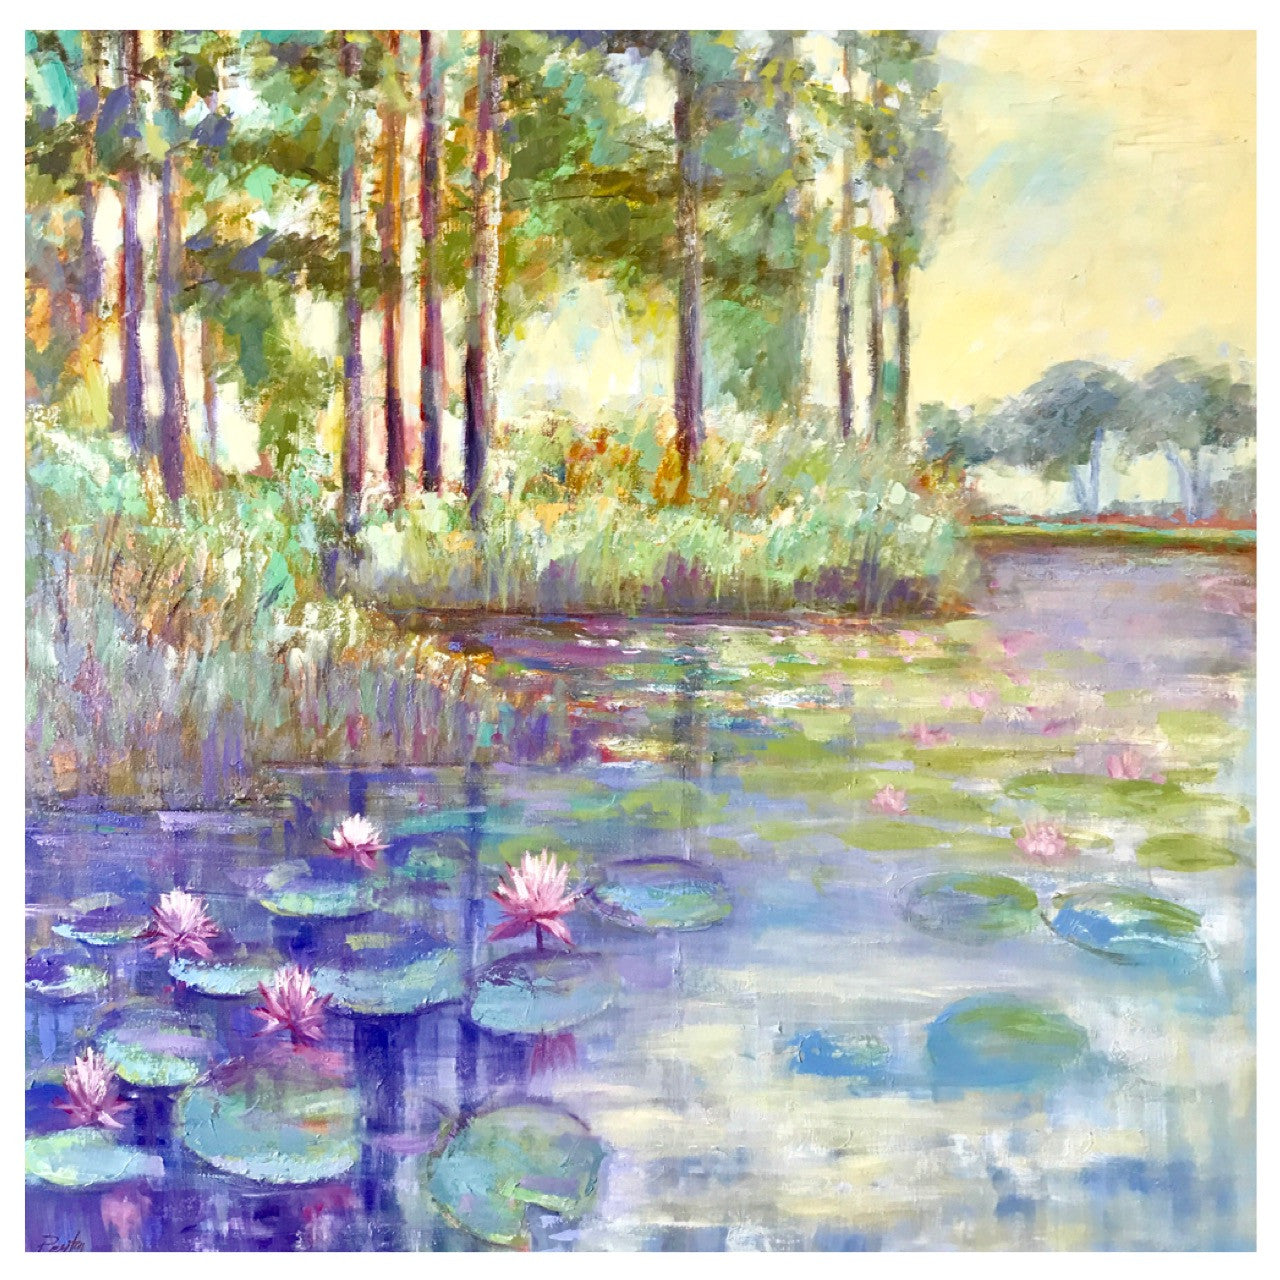 Waterlillies in Watercolor